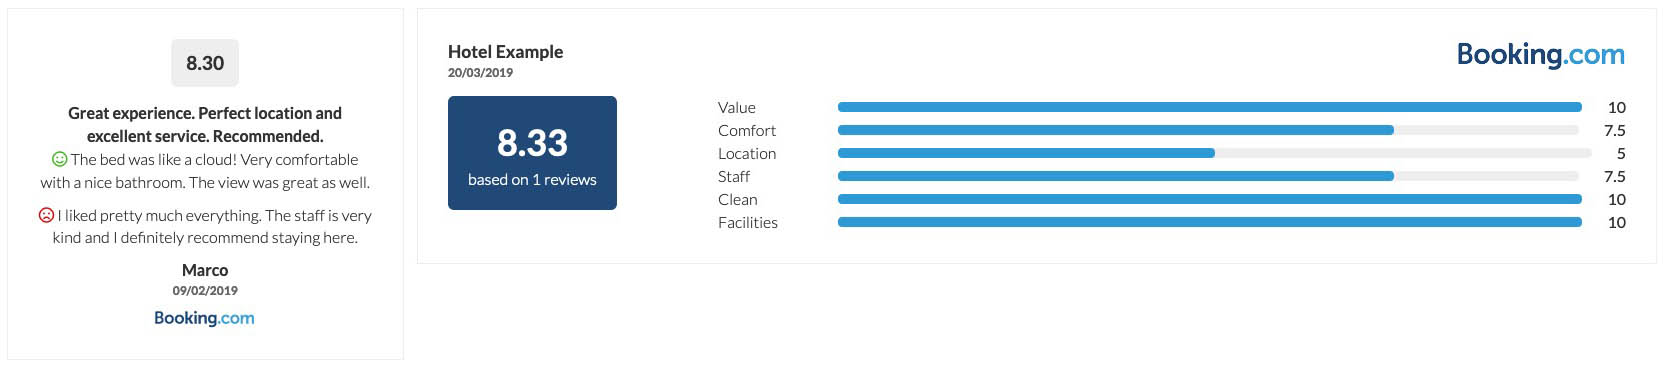 Dimensions In Cm Booking.Com Booking Accommodations